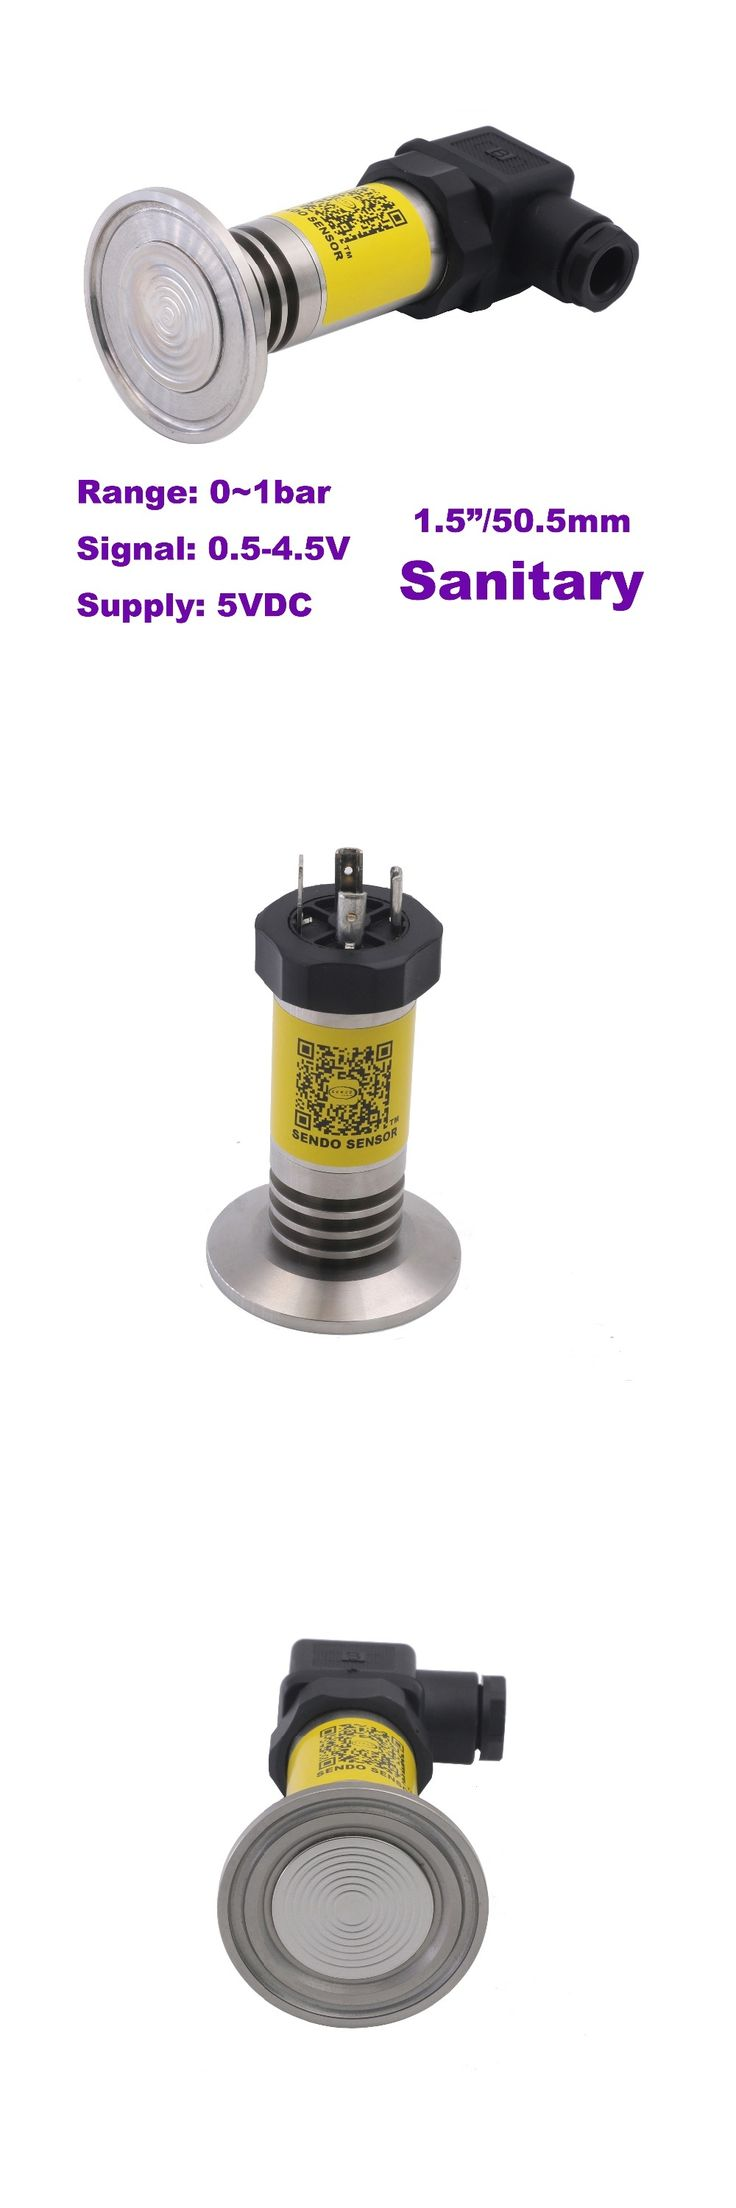 Sanitary pressure sensor 0.5-4.5V output, 0-1.0bar, 0~100kpa, 15psi, 5VDC supply, 0.5% acc, stainless steel 316L wetted parts